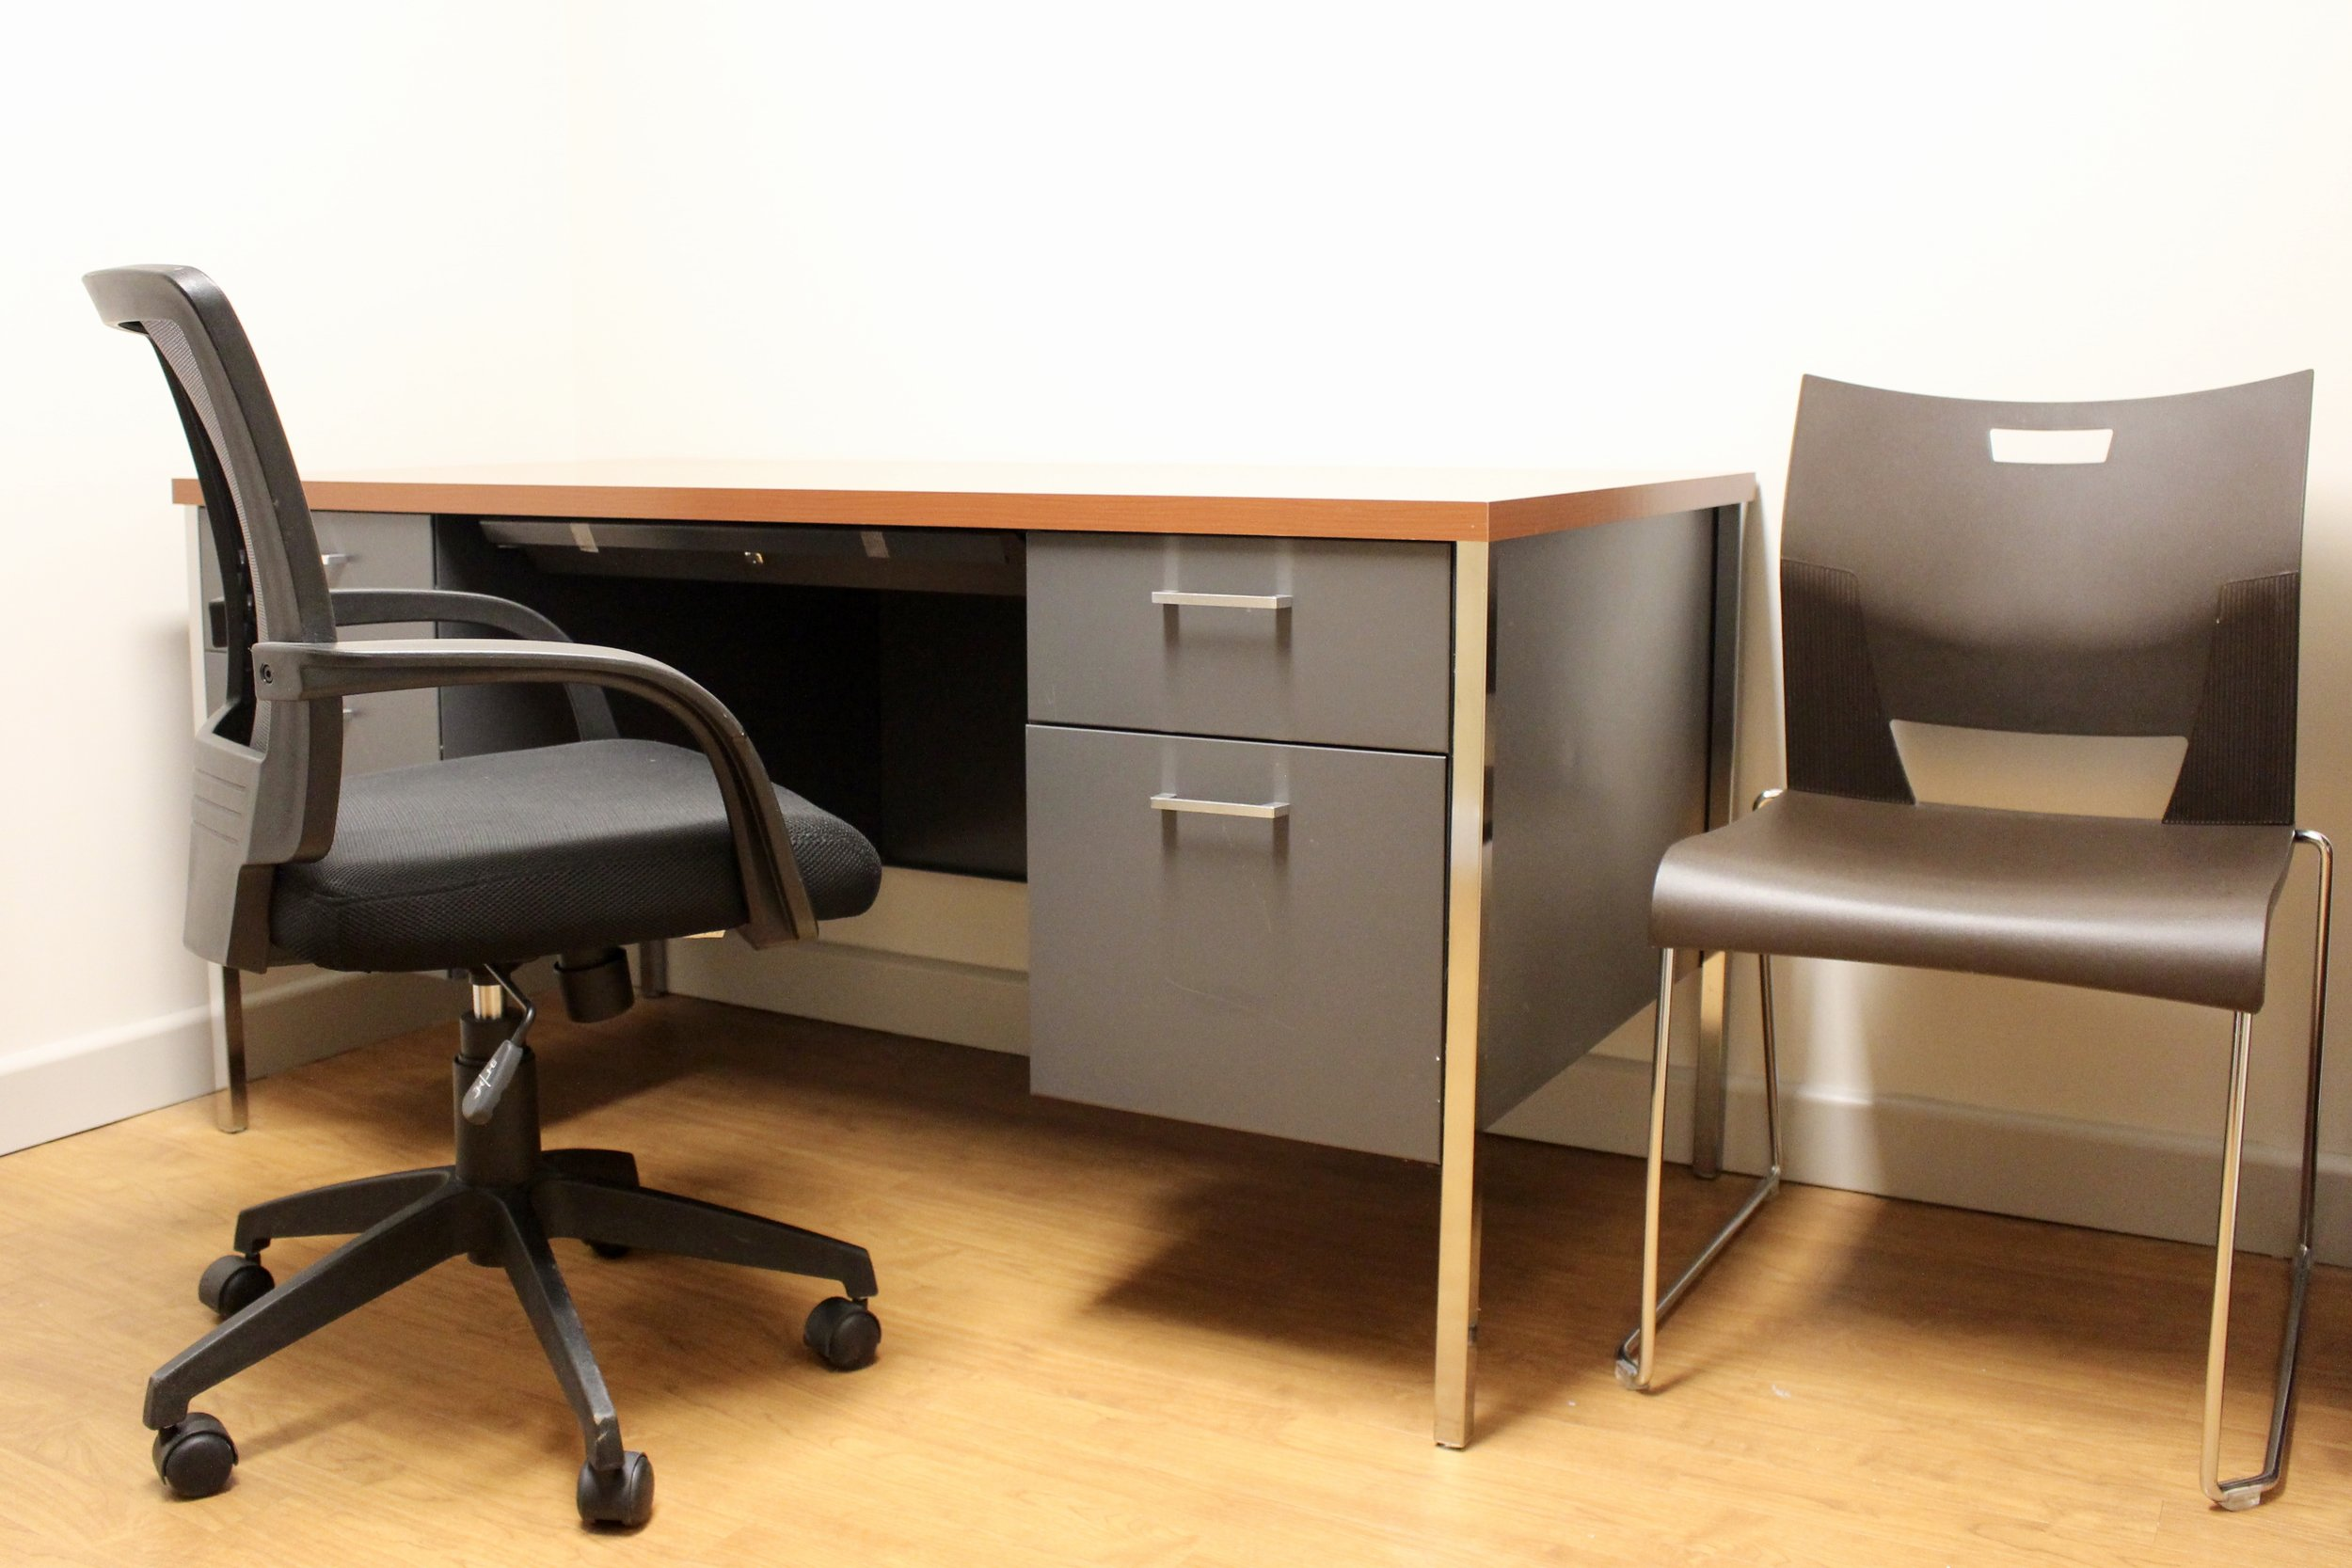 Hon Desk with OTG Task Chair and Duet